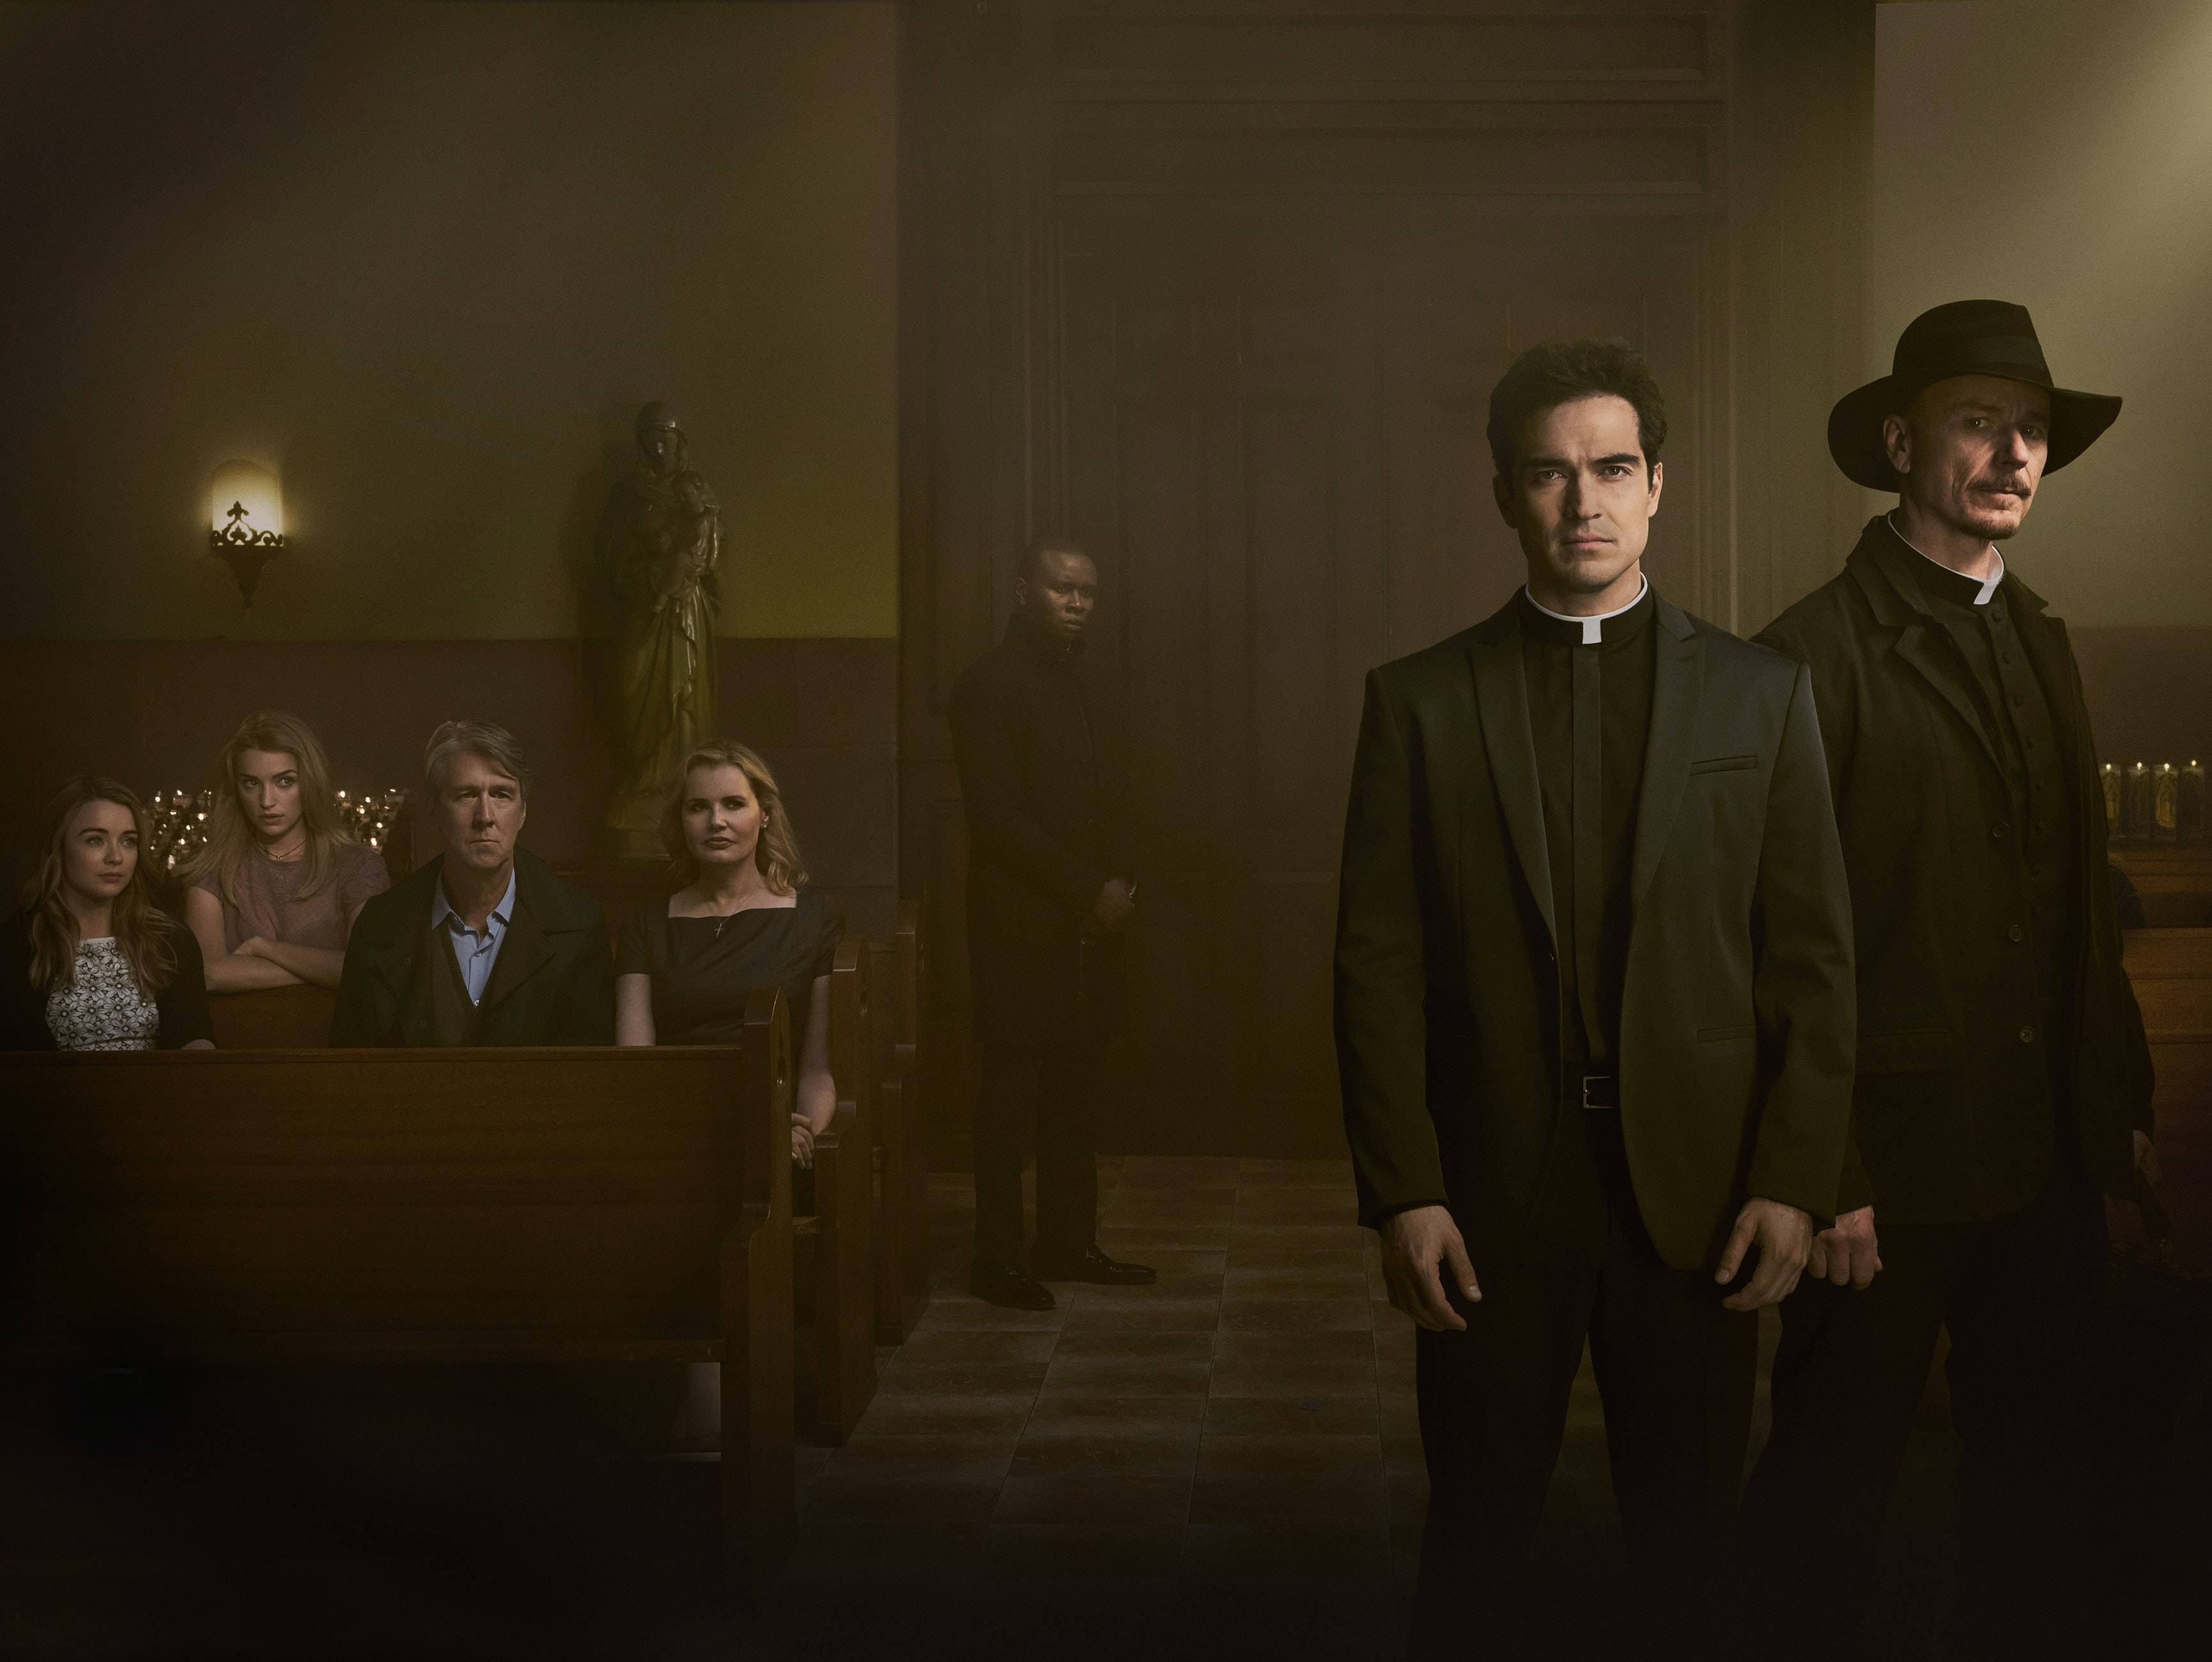 A New 'Exorcist' Looks to Rise Above a Misbegotten Franchise